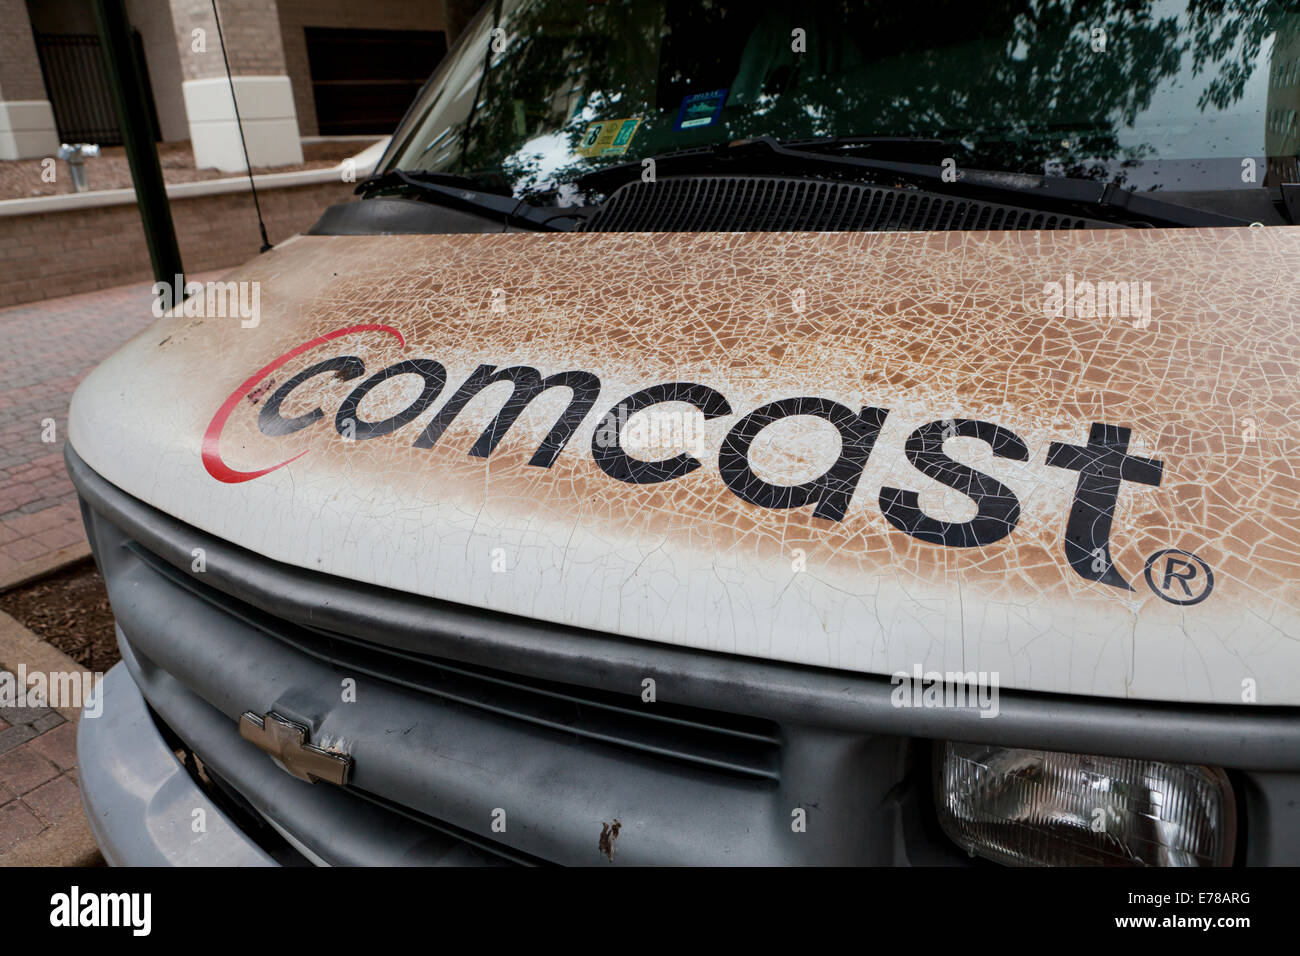 Dirty, worn-out, fading Comcast logo on service van - Arlington, Virginia USA - Stock Image